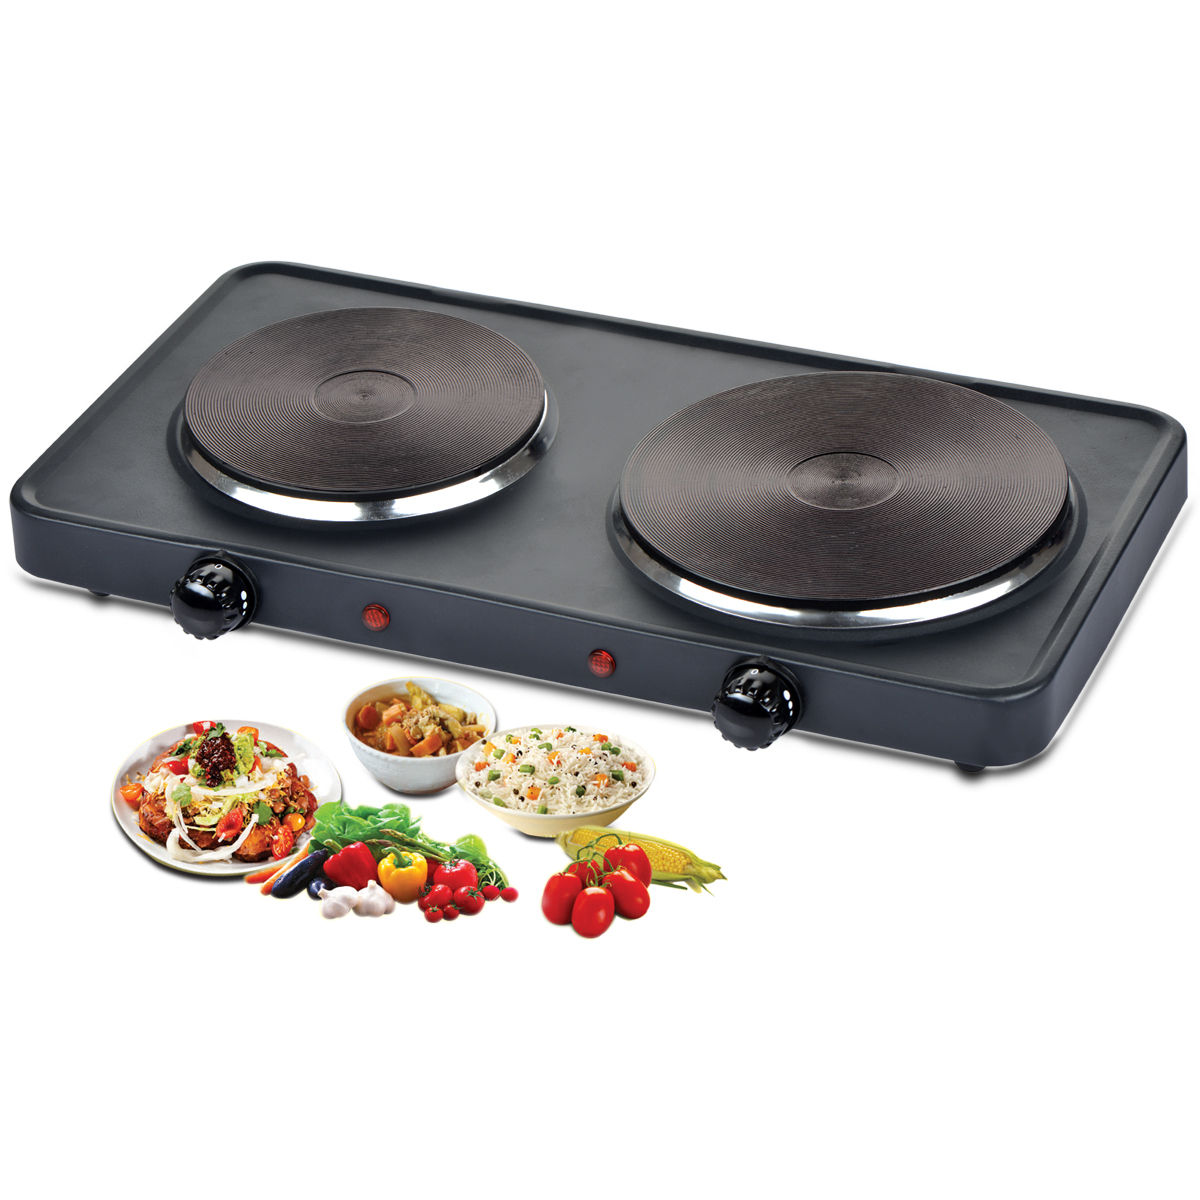 Buy Sheffield Dual Hot Plate Online At Best Price In India On